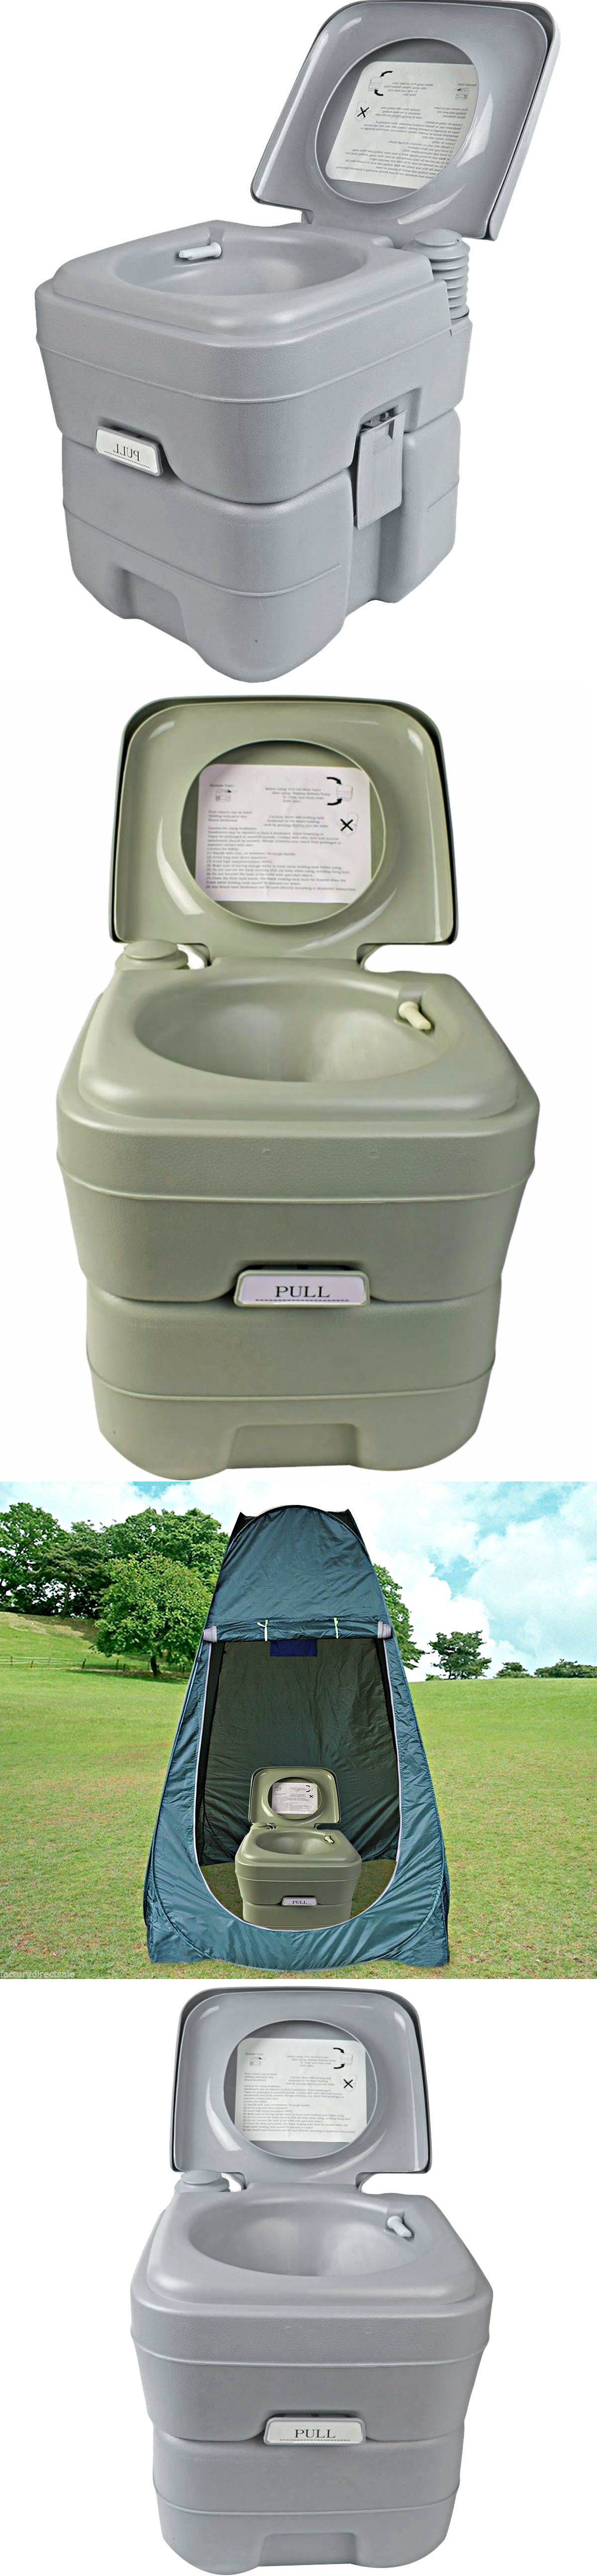 portable toilets and accessories 181397 portable toilet seat porta